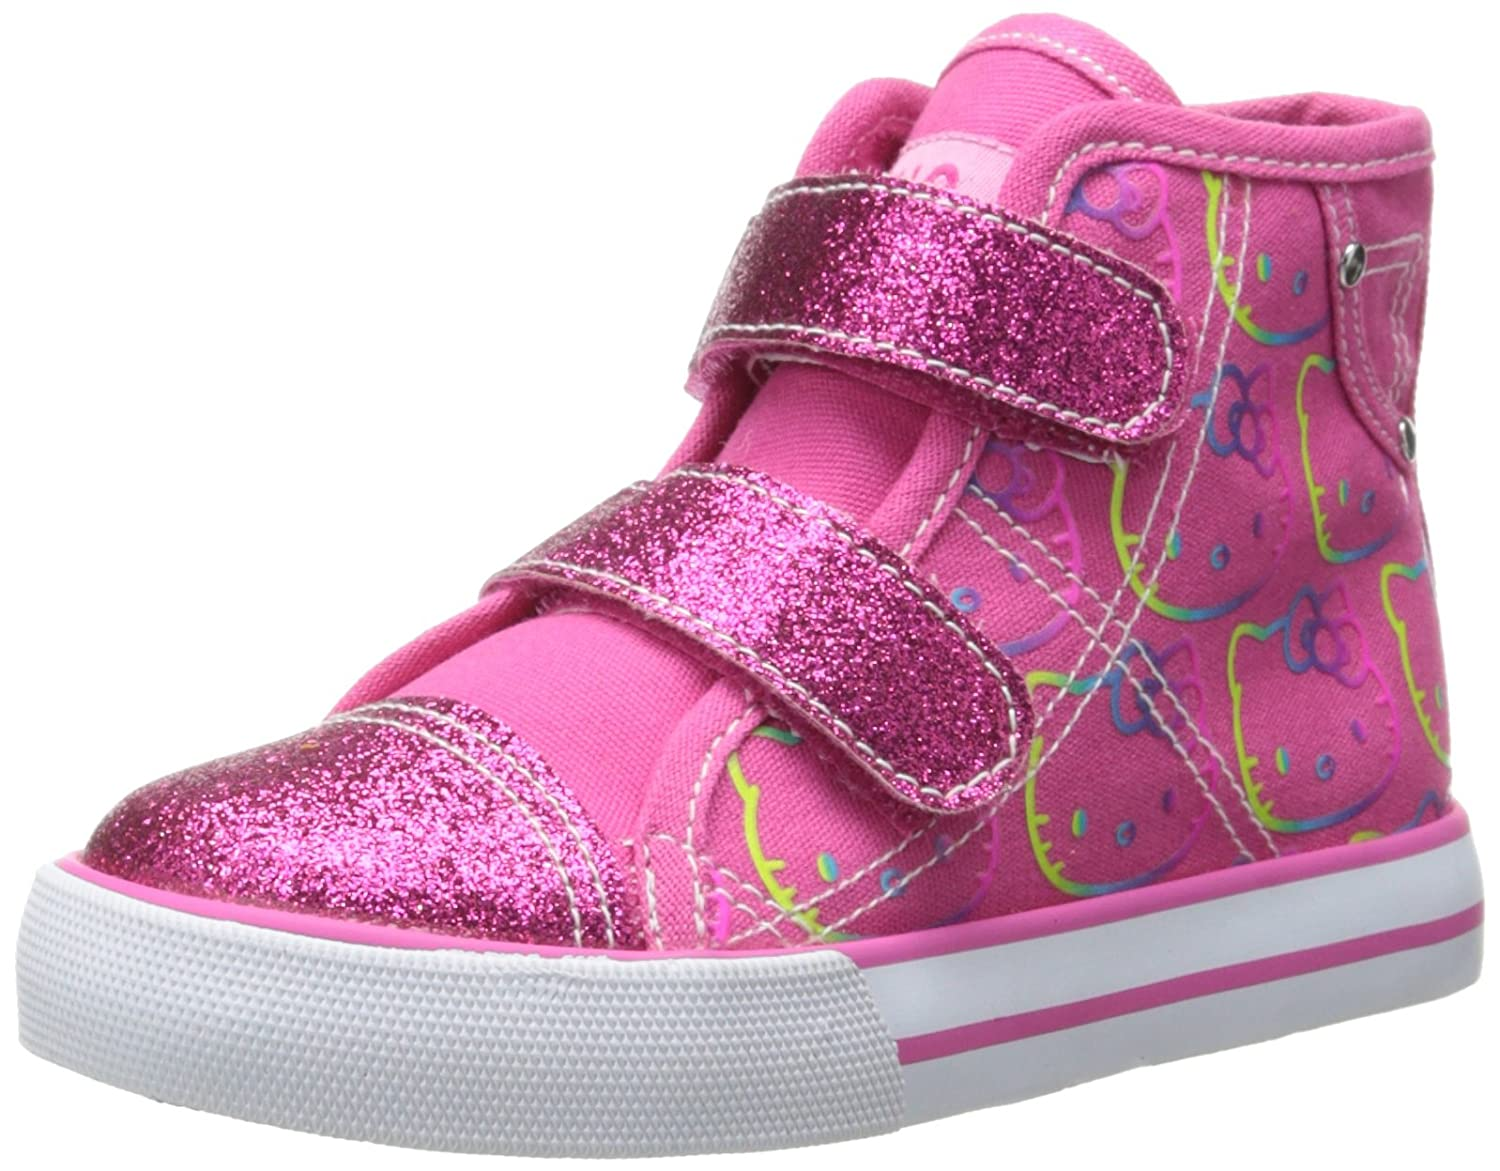 Hello kitty lil sabrina sneaker toddler pink us toddler sneakers jpg  1500x1171 Dc hello kitty shoes 0365b6dc48e